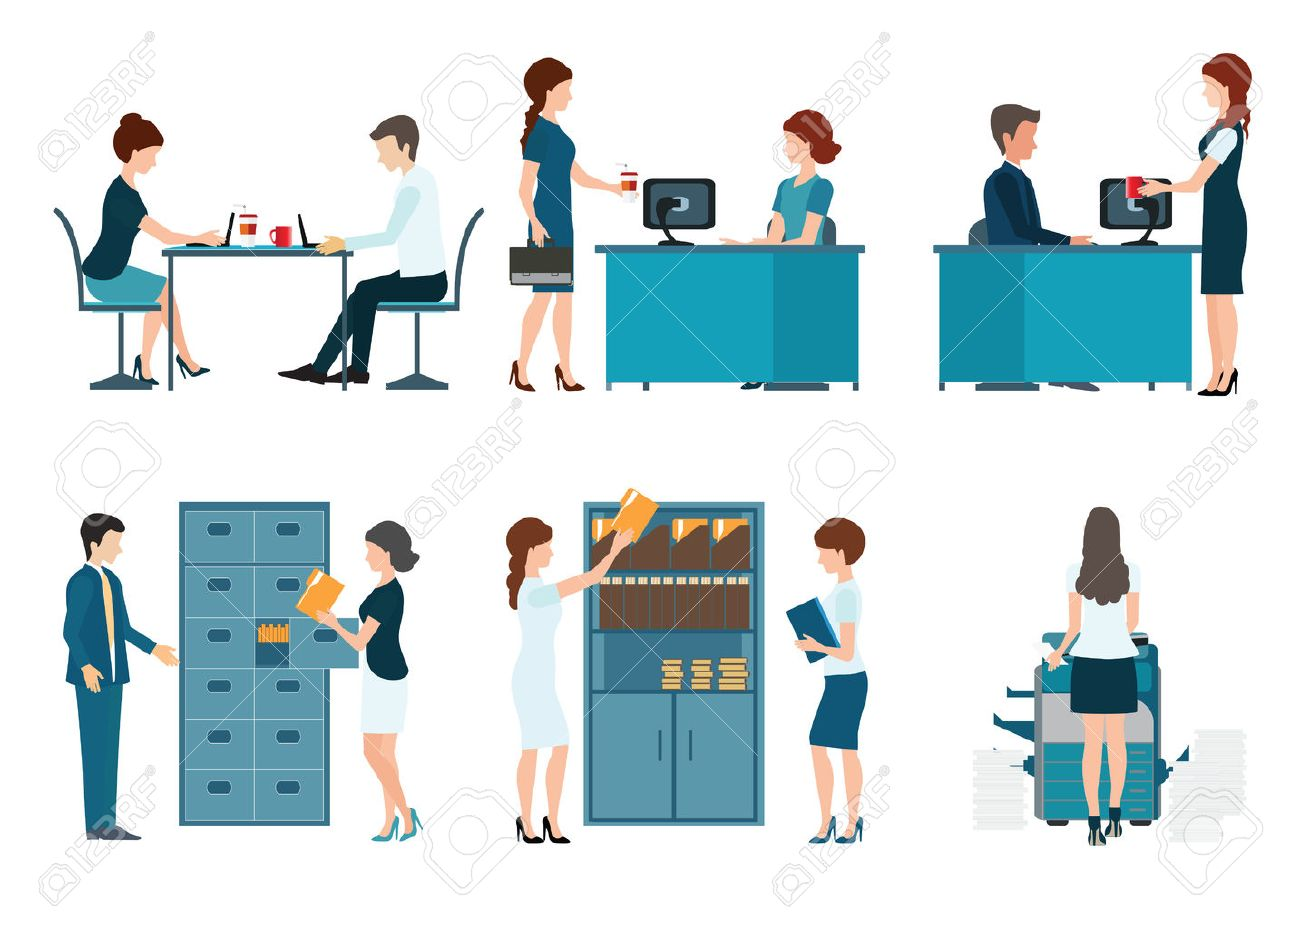 Office worker, office people working isolated on white background , business people vector illustration. - 53047893